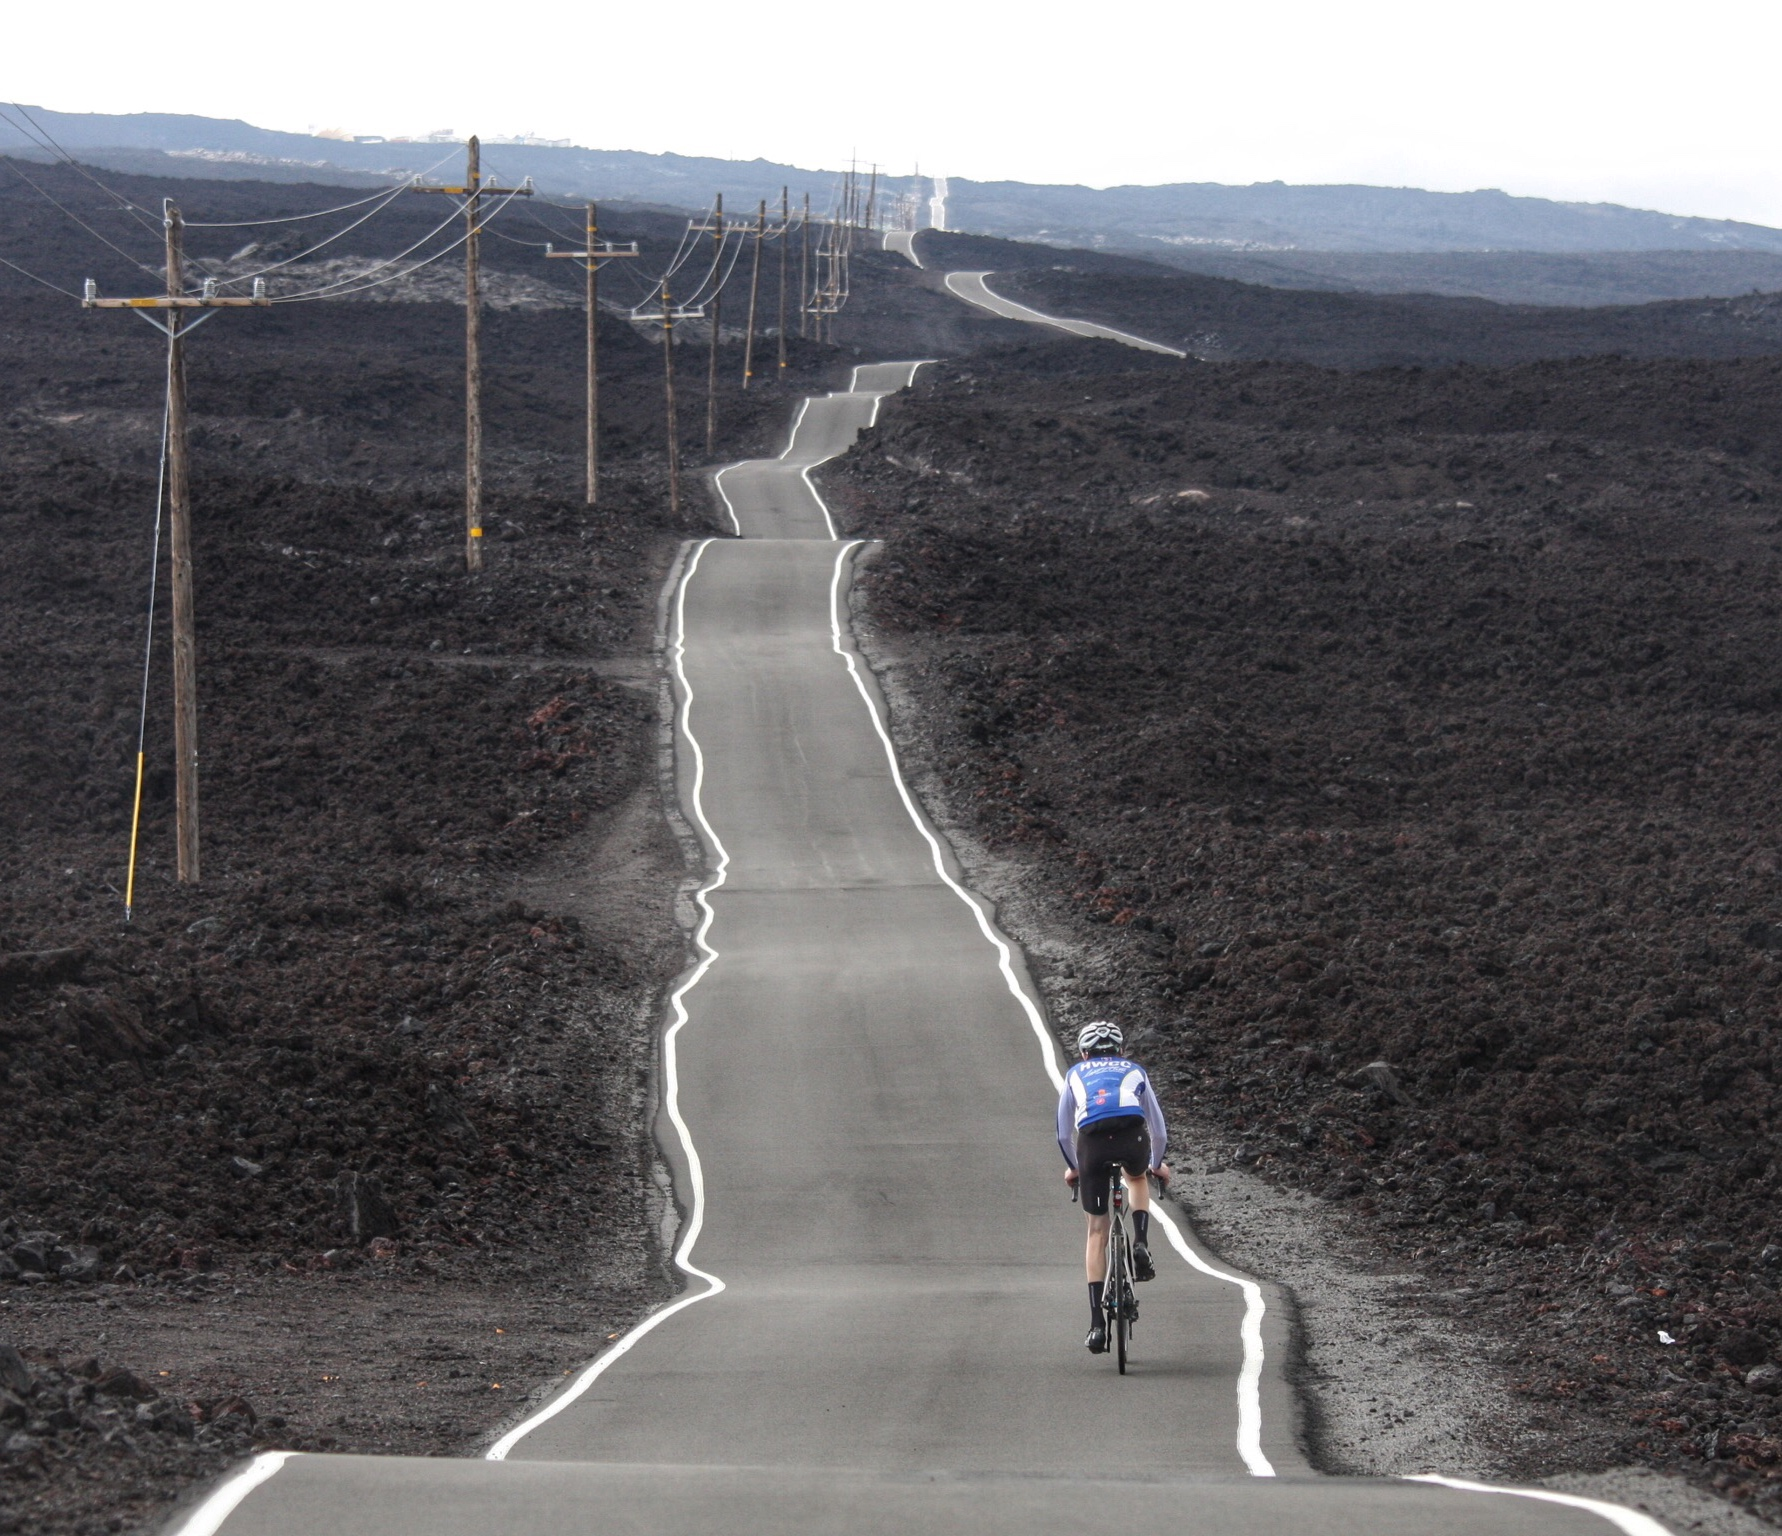 Mauna Kea may get more airtime, but the Mauna Loa road is equally stunning. This is what happens if you decide to lay a road over successive lava flows!